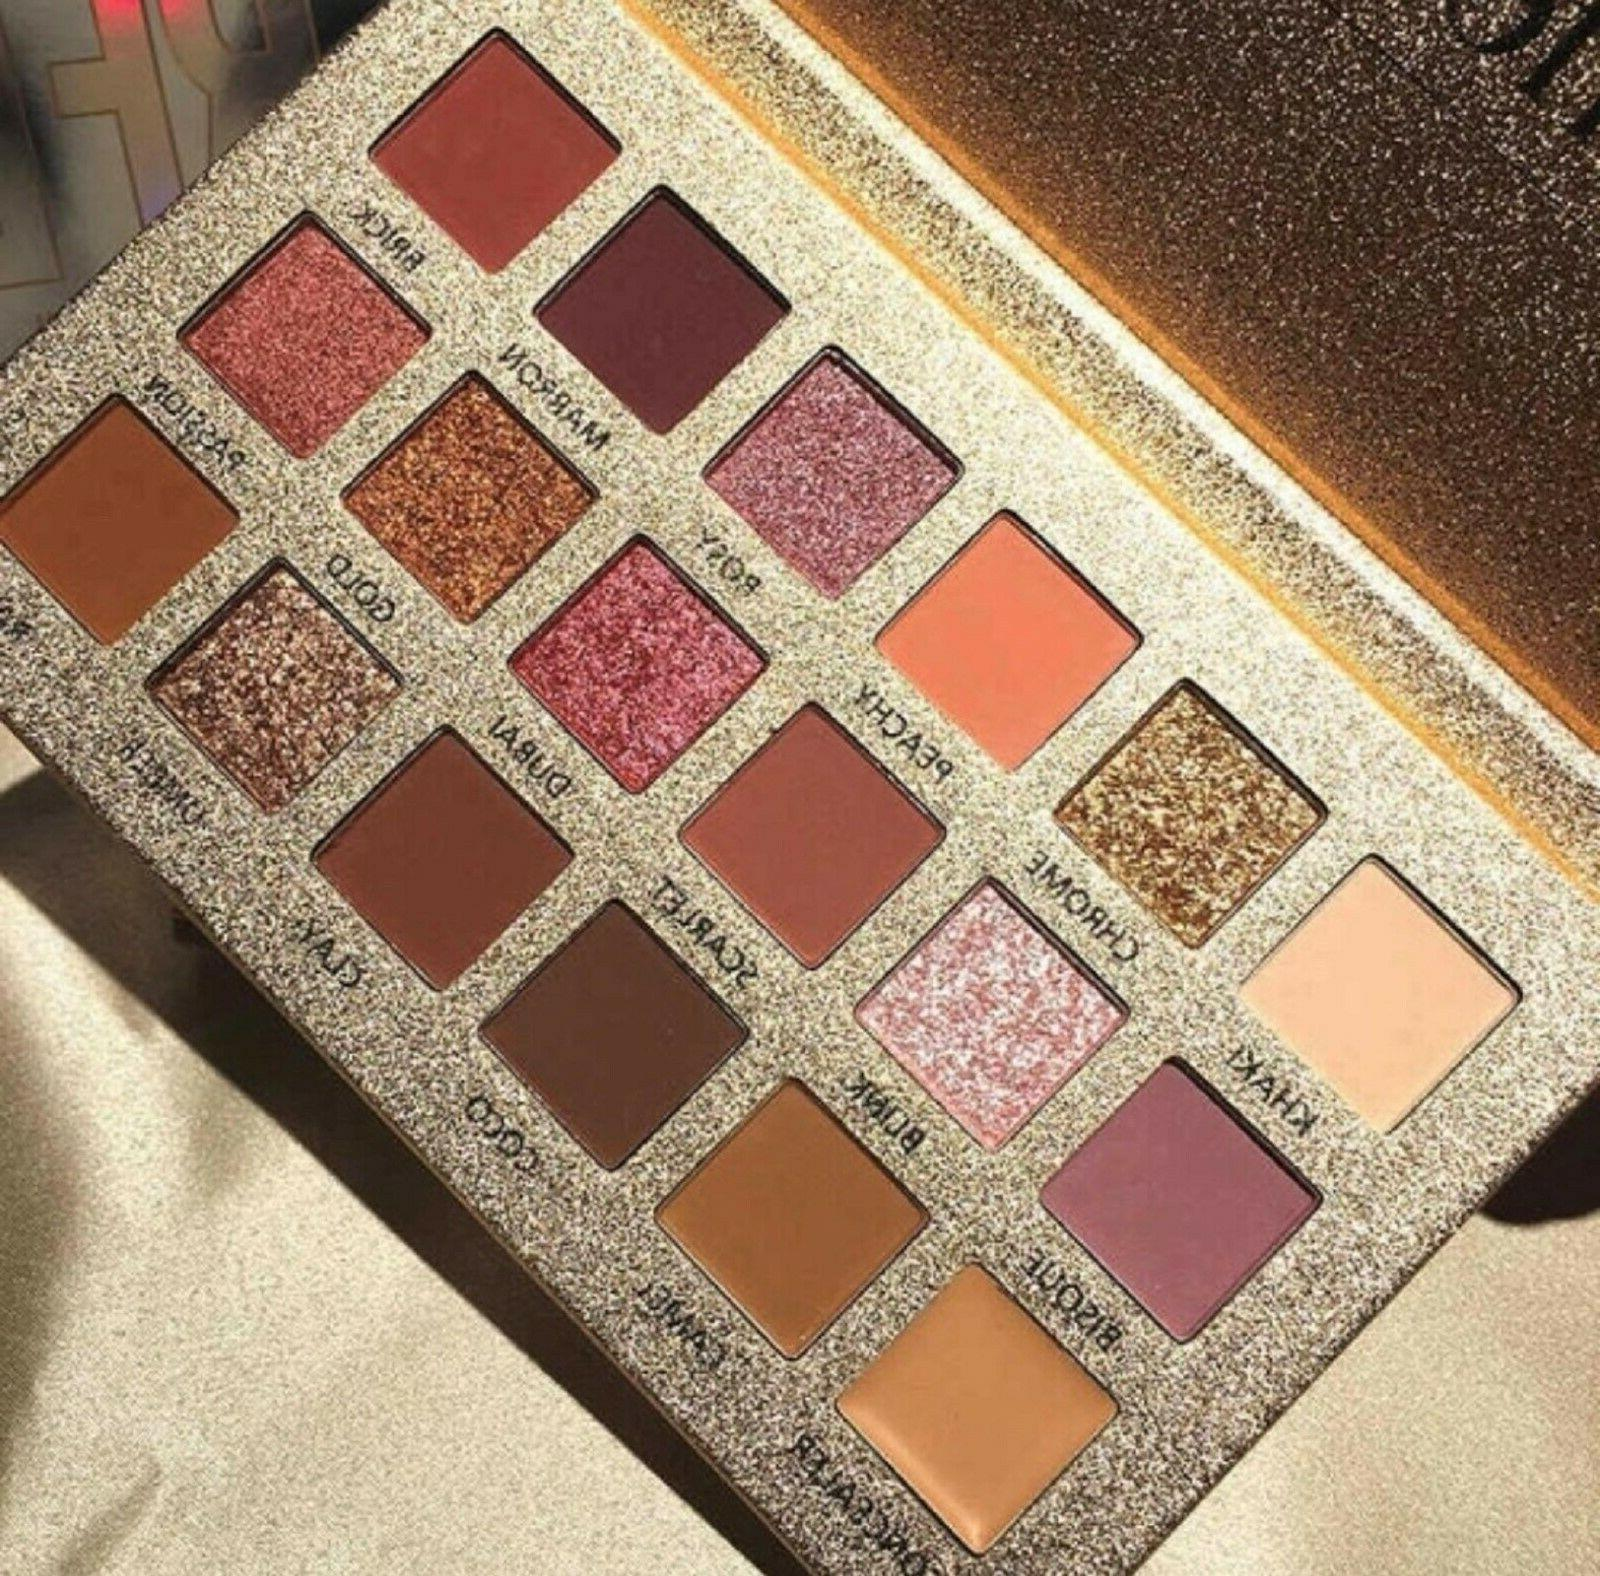 Professional Eyeshadow Pigmented Mineral Glitter Makeup